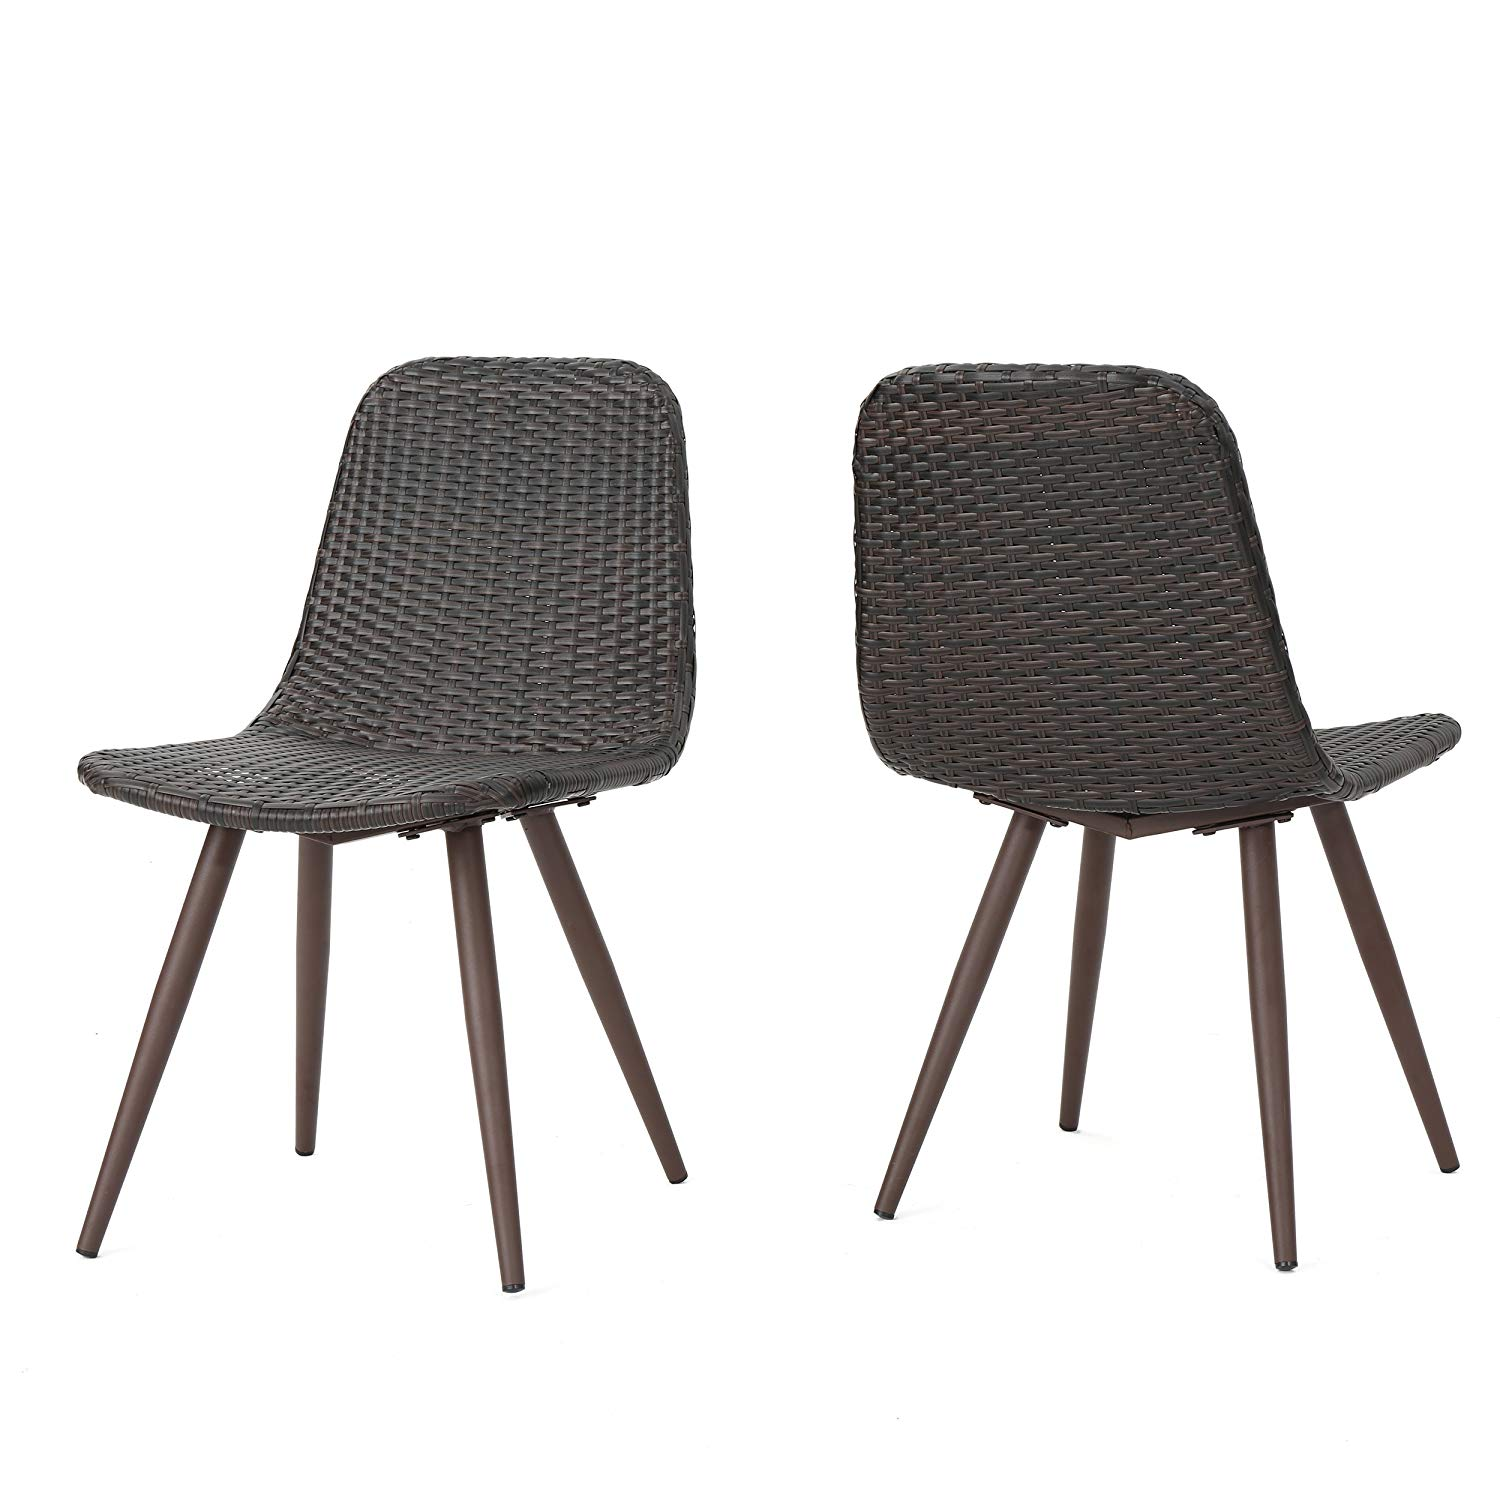 Get Quotations Gilda Outdoor Wicker Dining Chairs With Dark Brown Legs Set Of 2 In